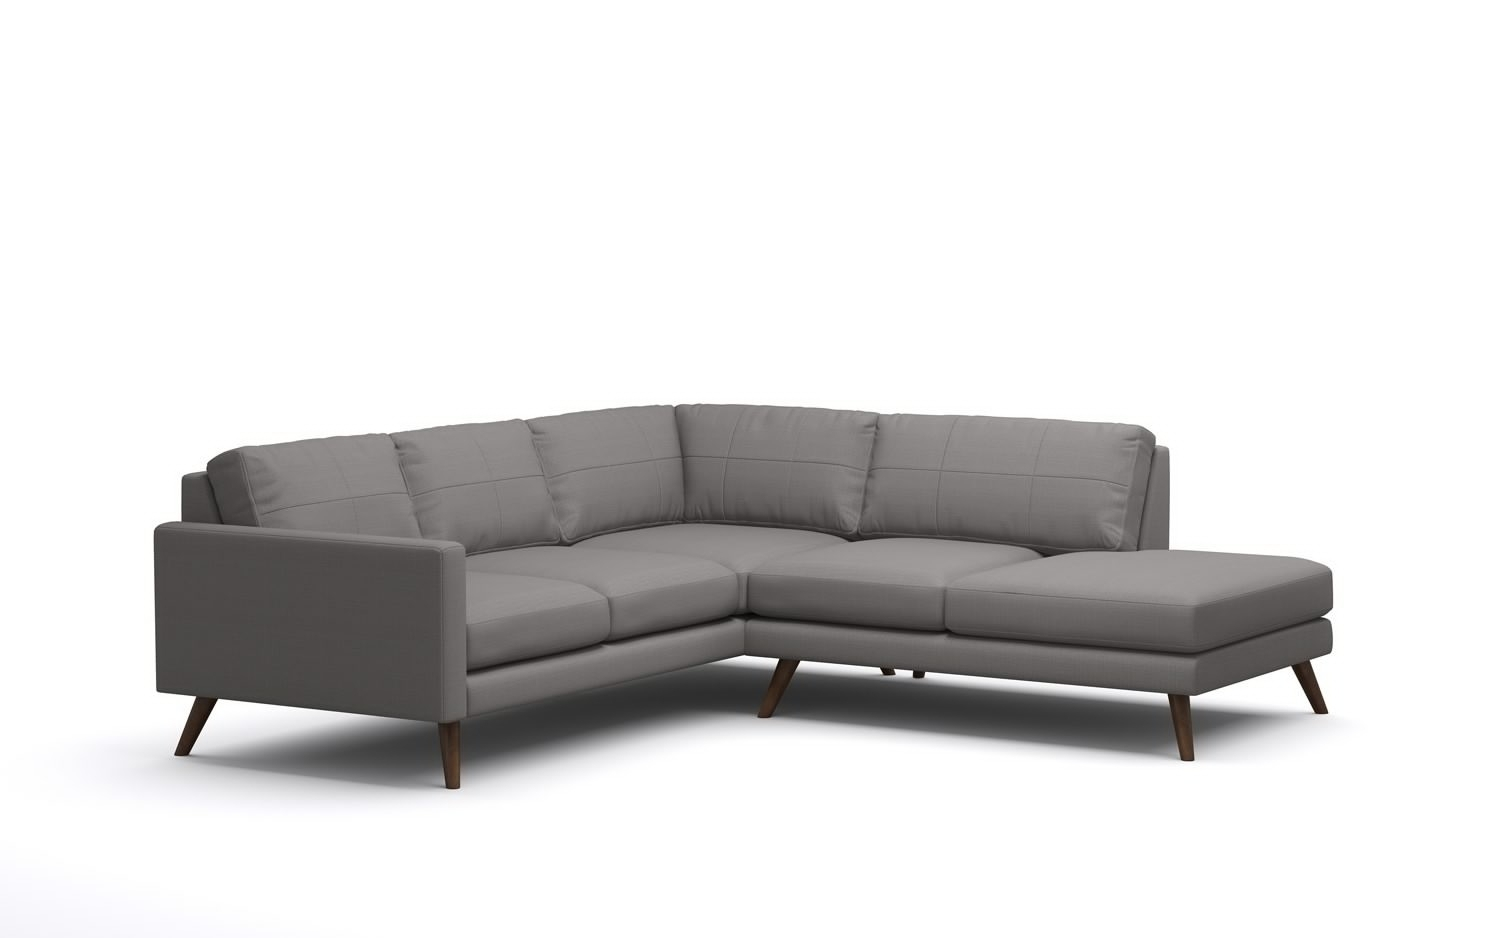 Sectional Sofa Design: European Sectional Sofa Houzz Online Sale Intended For Houzz Sectional Sofas (View 6 of 10)